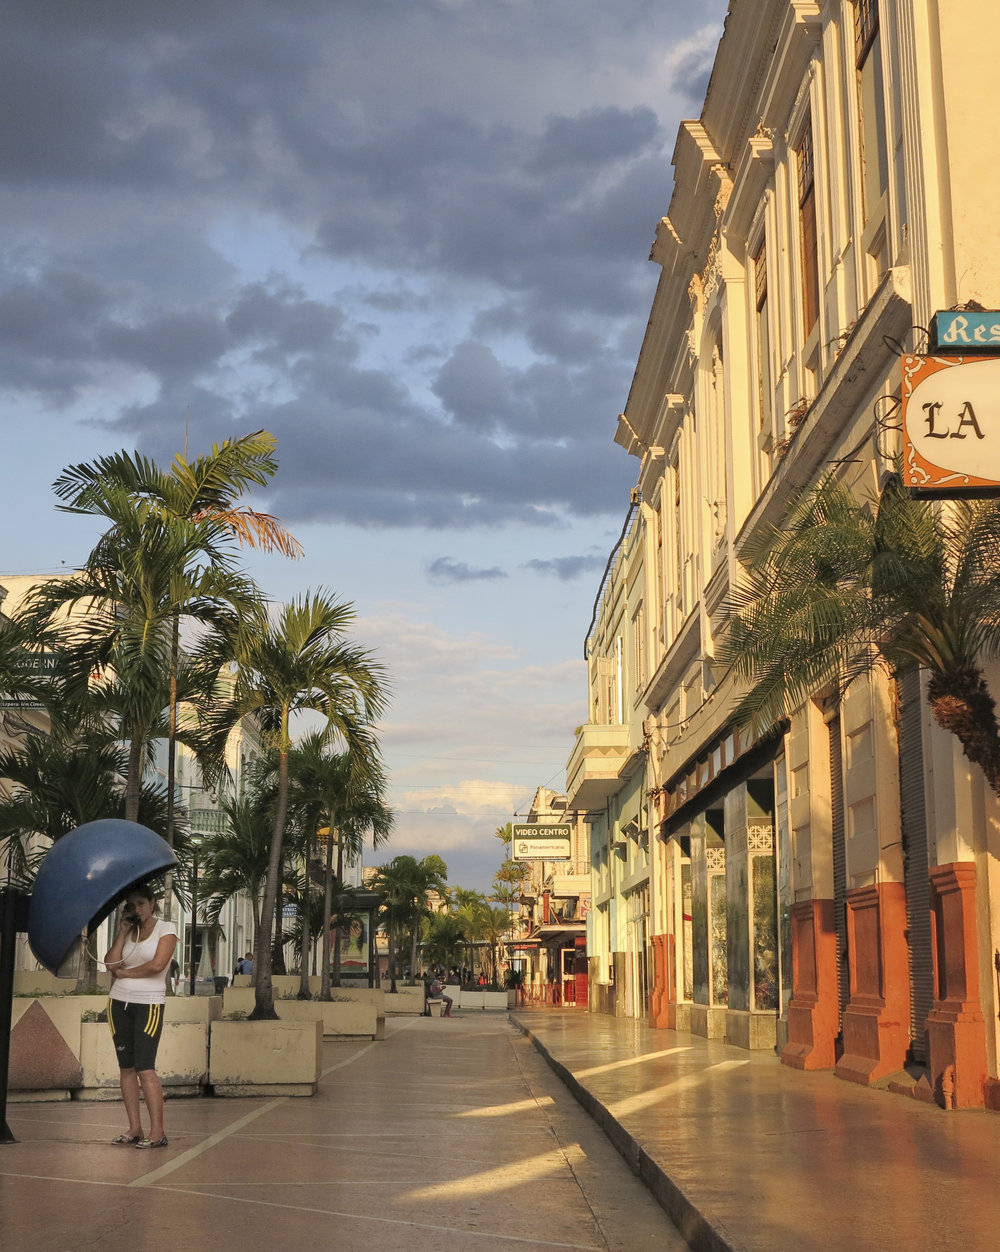 The pedestrian mall in the city of Cienfuegos Cuba. It's early evening after the shops have closed.